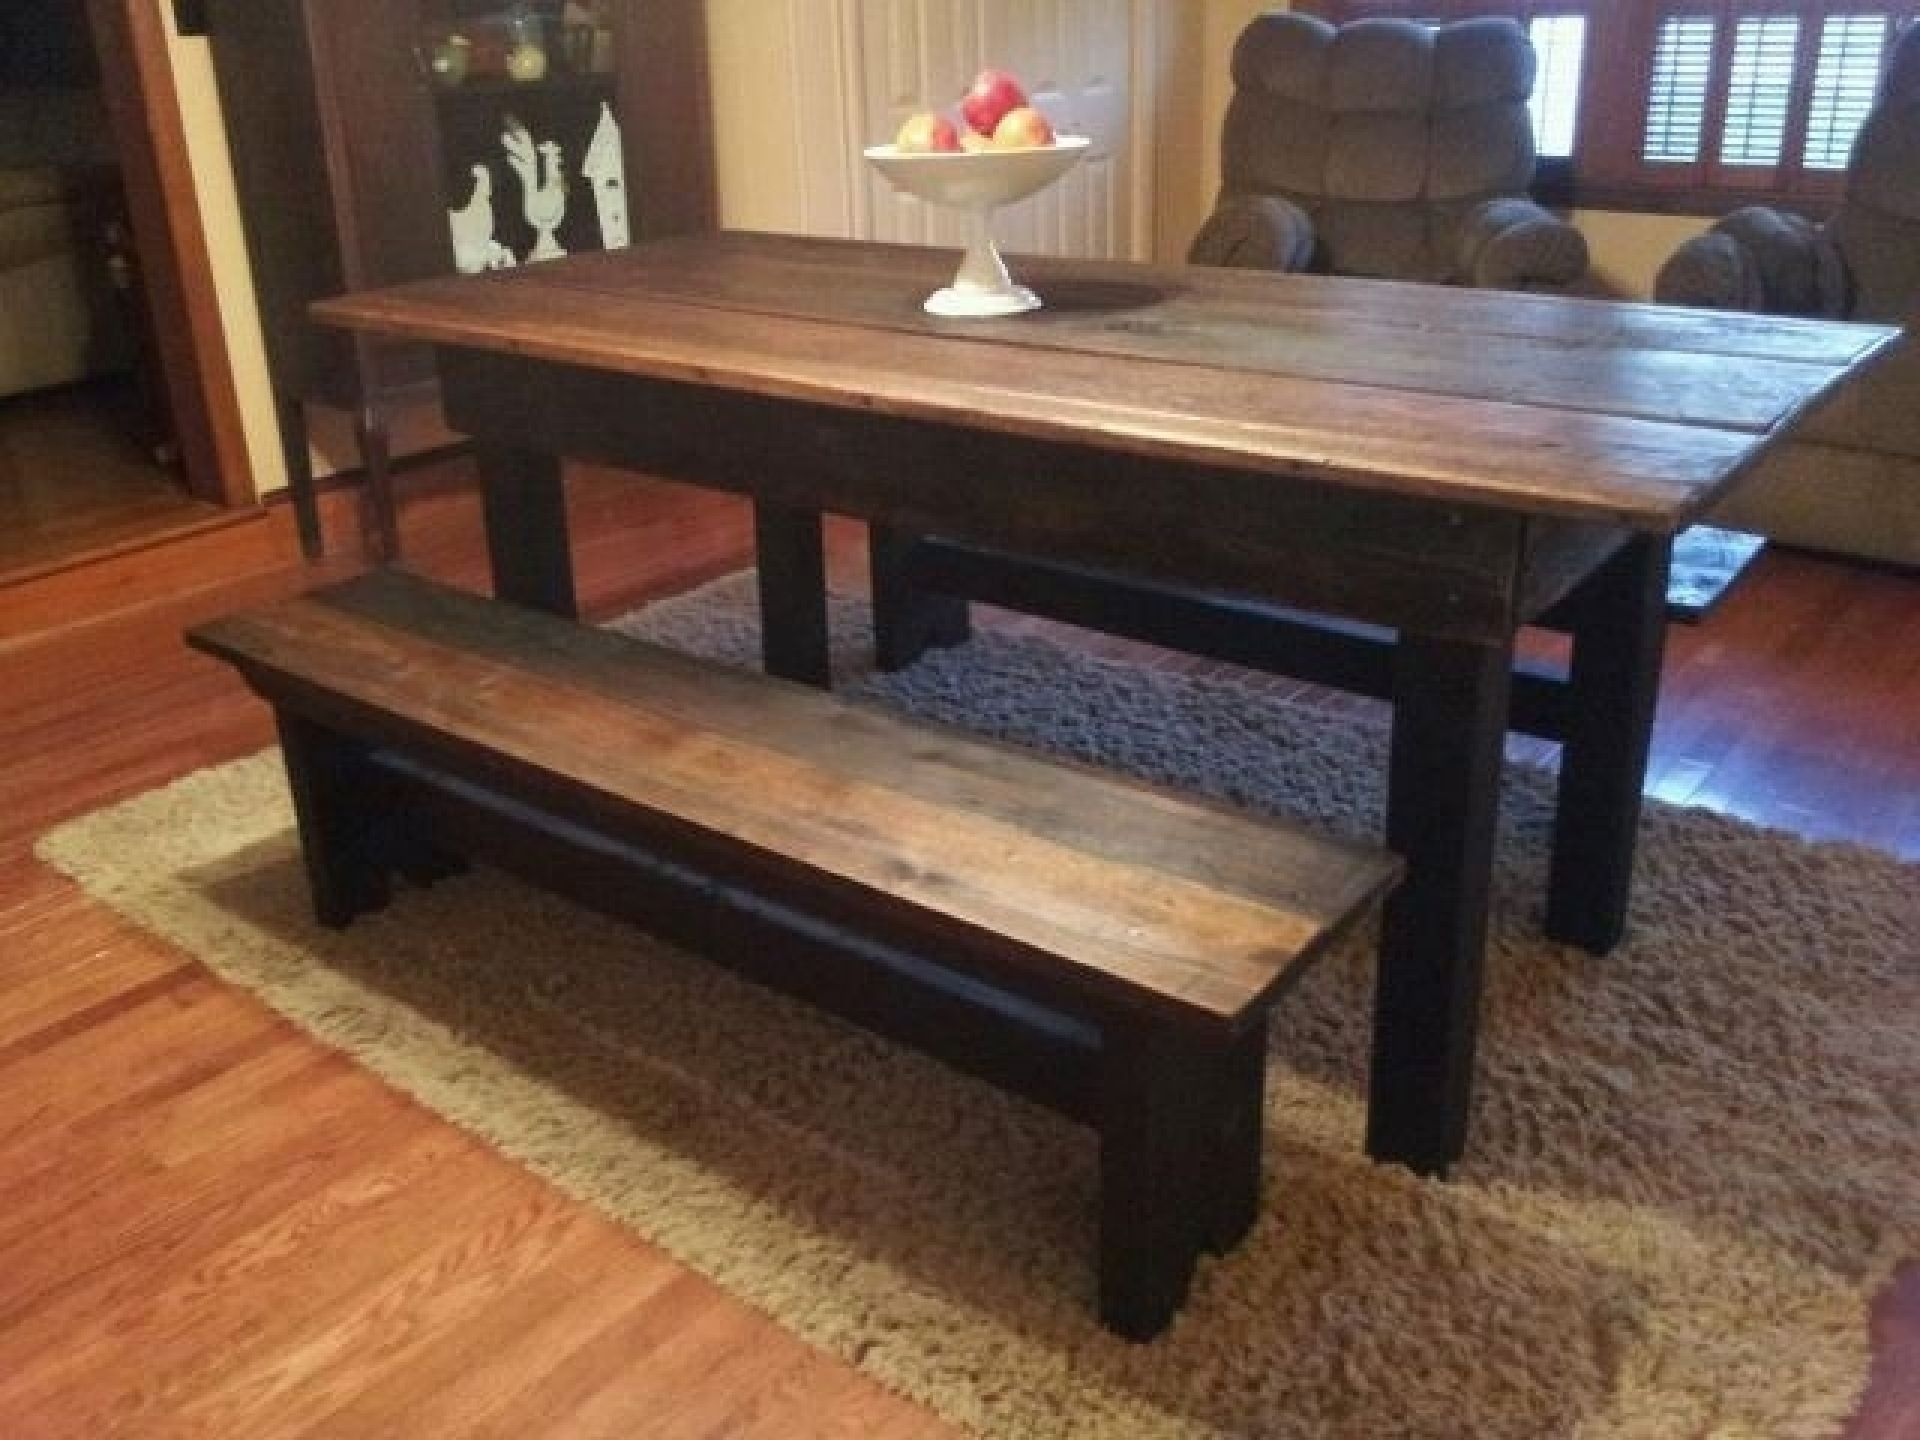 Barn Wood Dining Room Table  Bring In Natural Look inside the House   Old  Dining Room Barn Wood Dining Room Table With Bench  barn wood dining room  table. Barn Wood Dining Tables   Dining Table with Barn Wood Table For